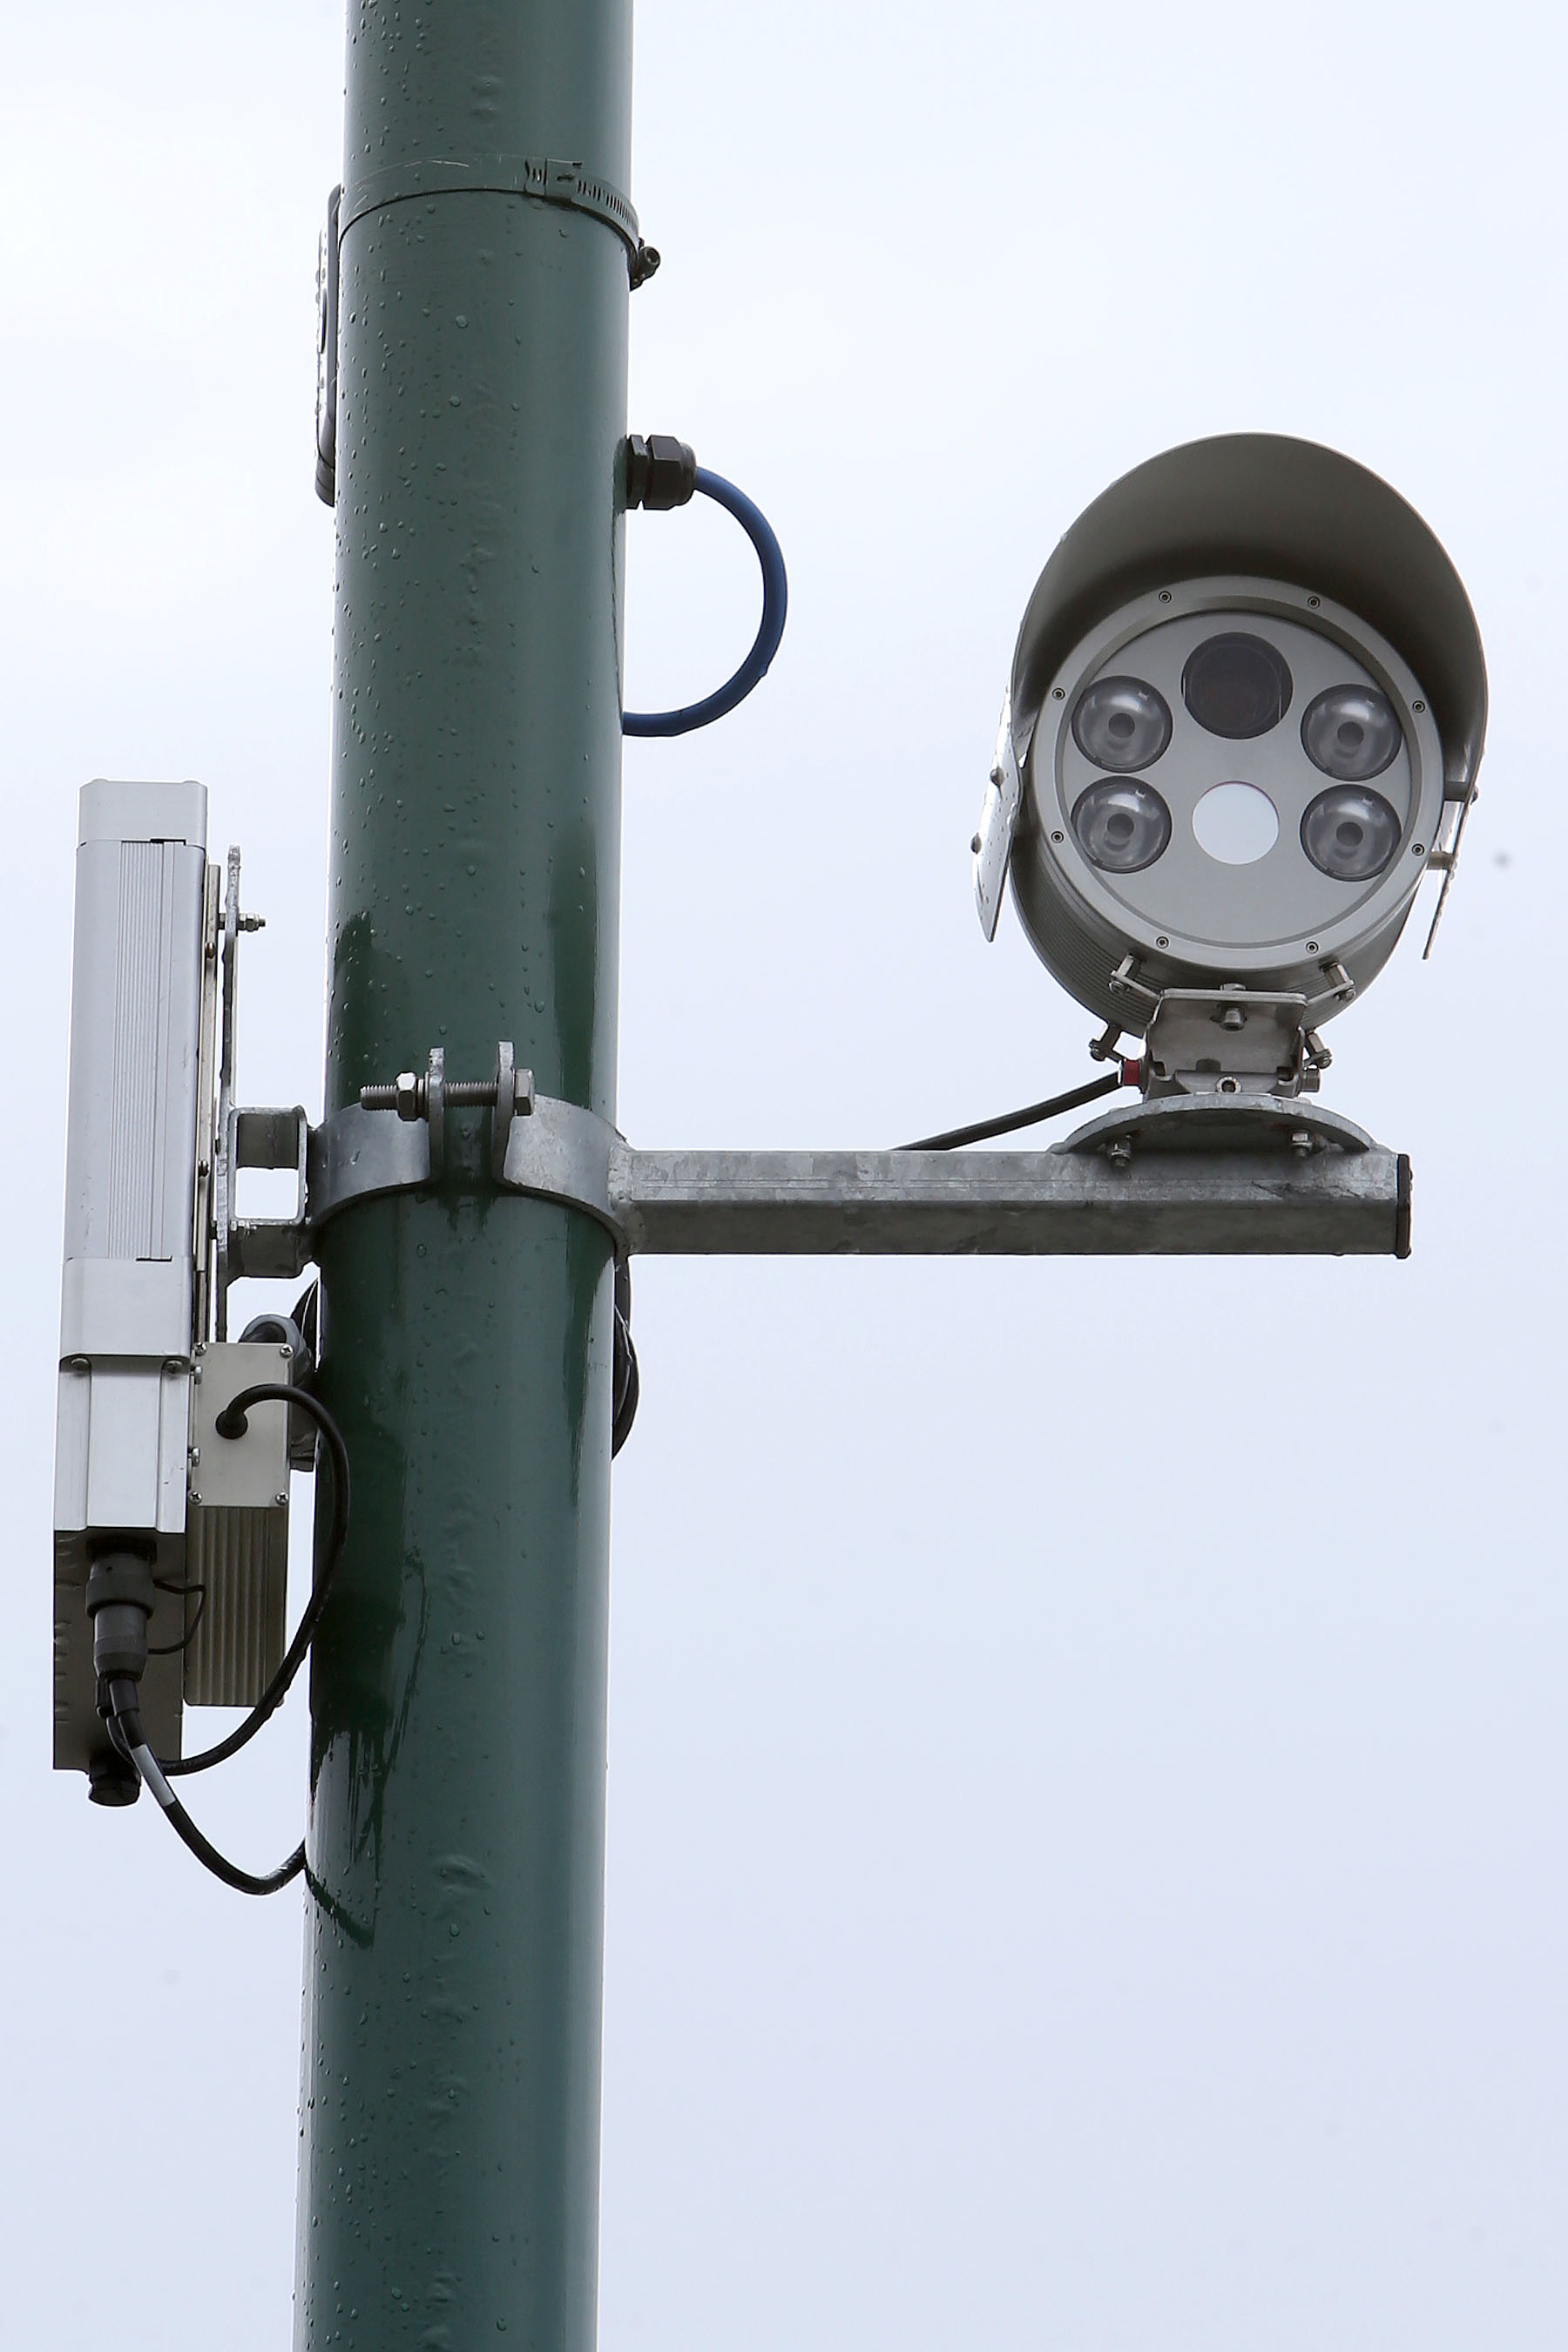 Crime fears as Penryn CCTV to be switched off